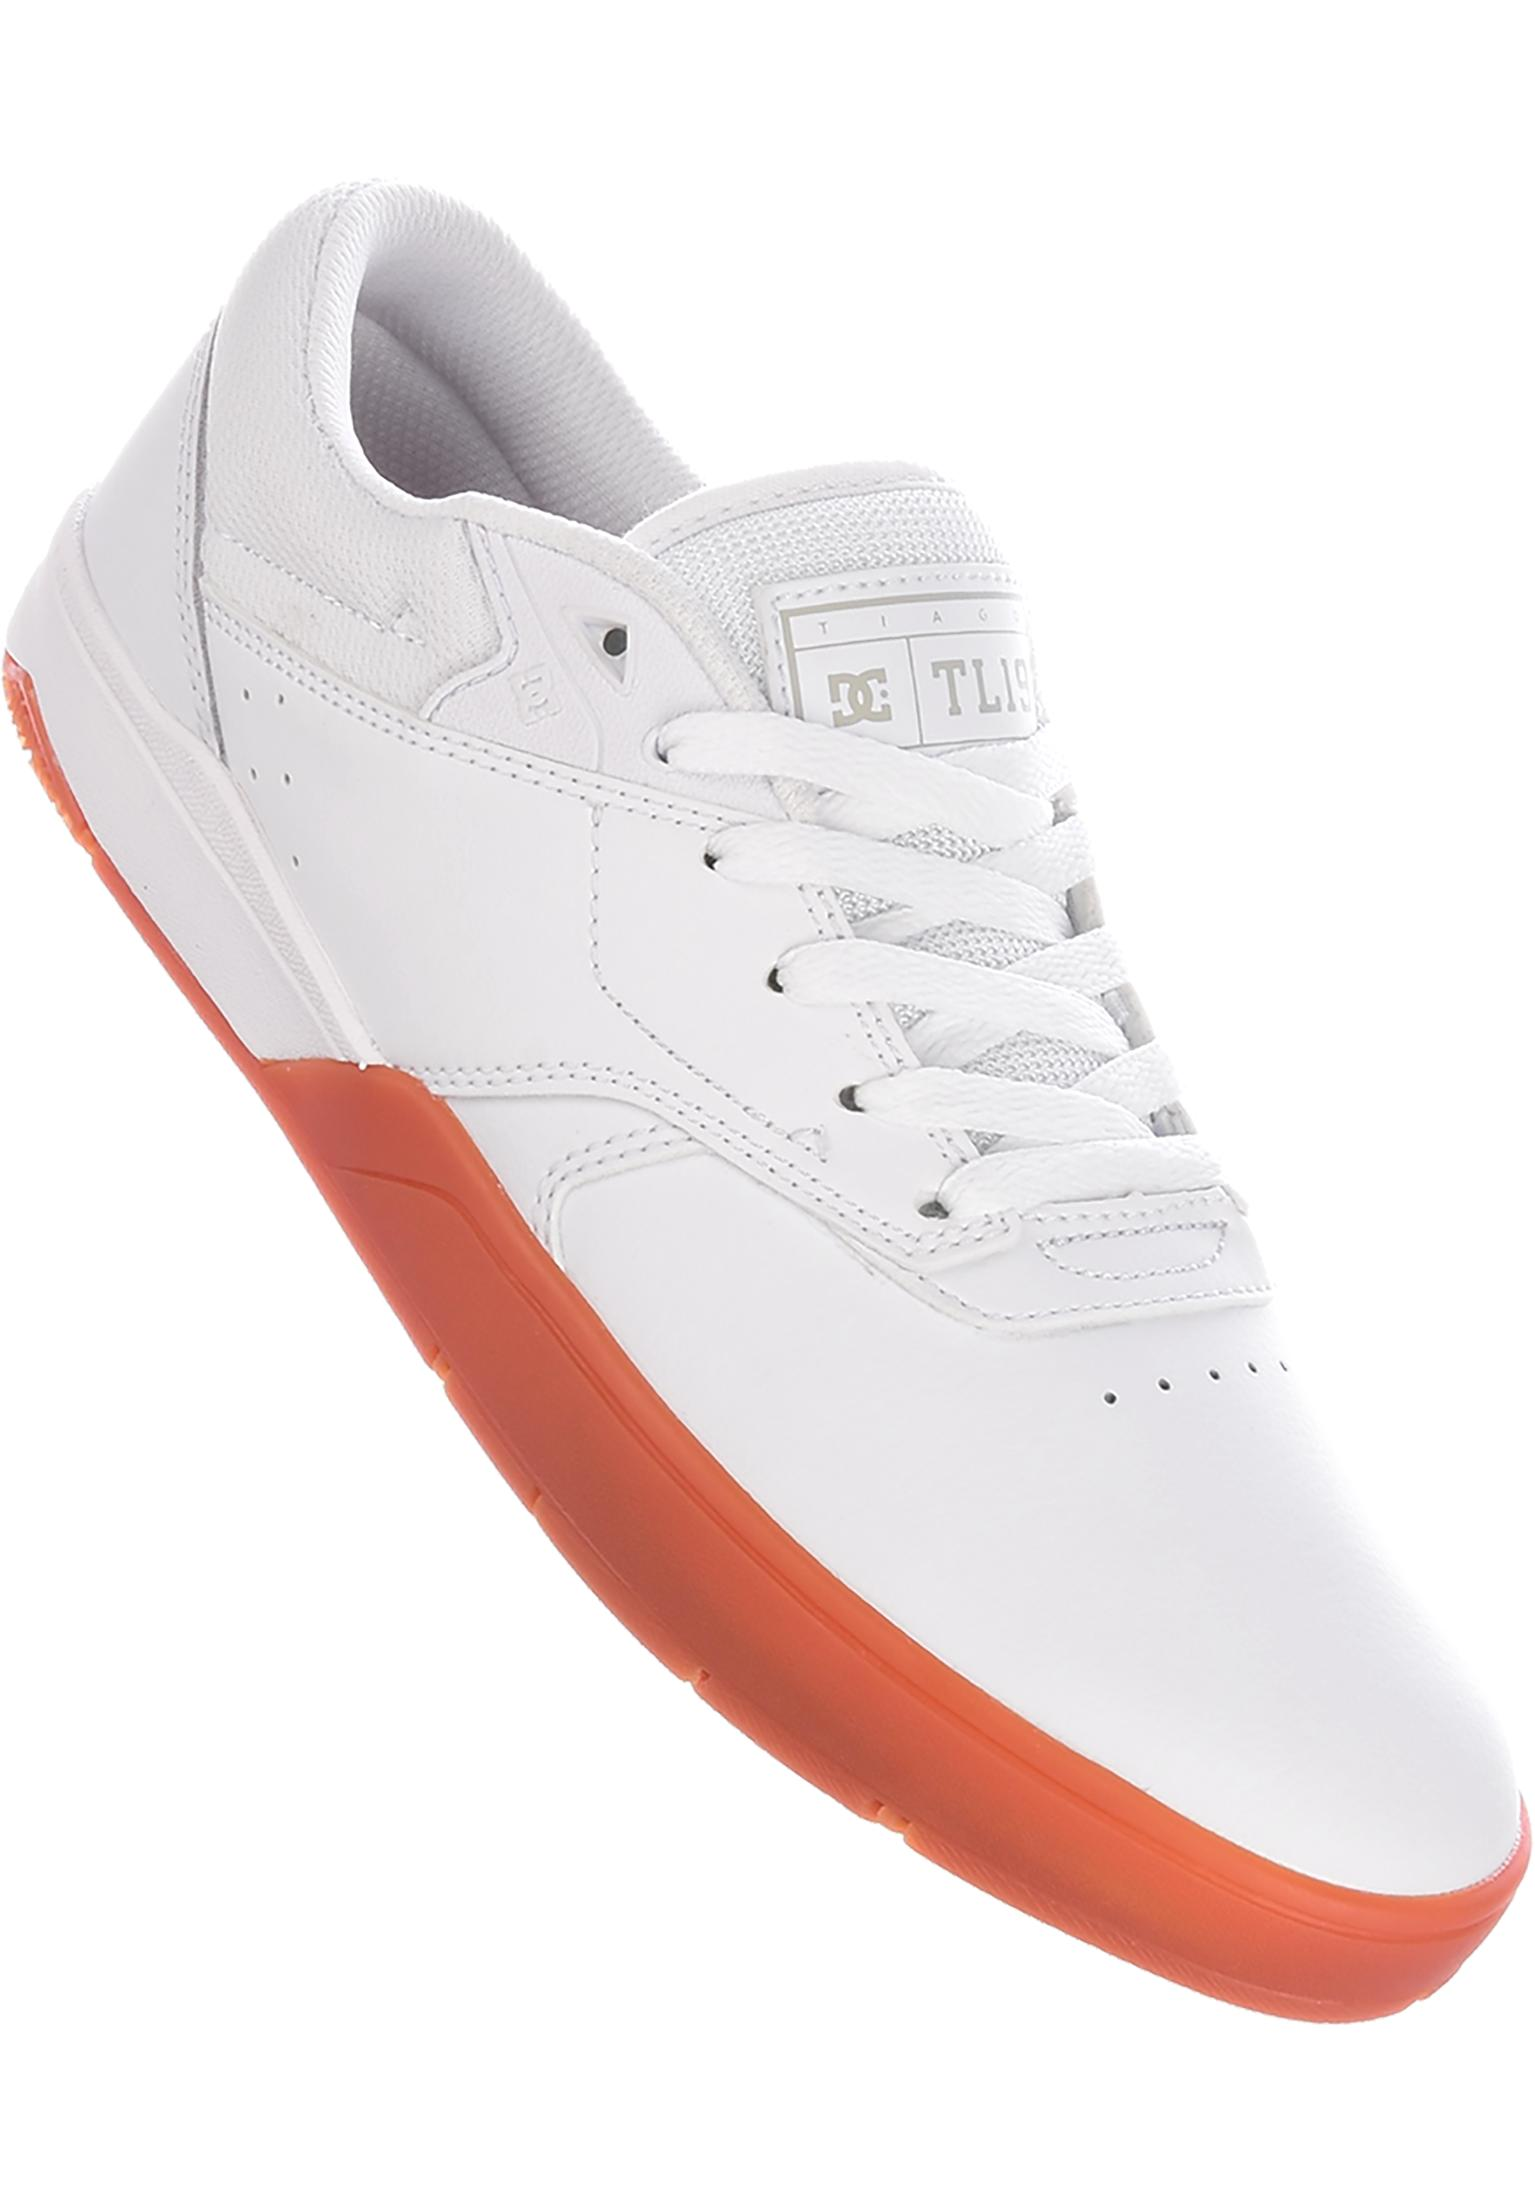 c56ac0bcec6e06 Tiago S DC Shoes All Shoes in white-gum for Men